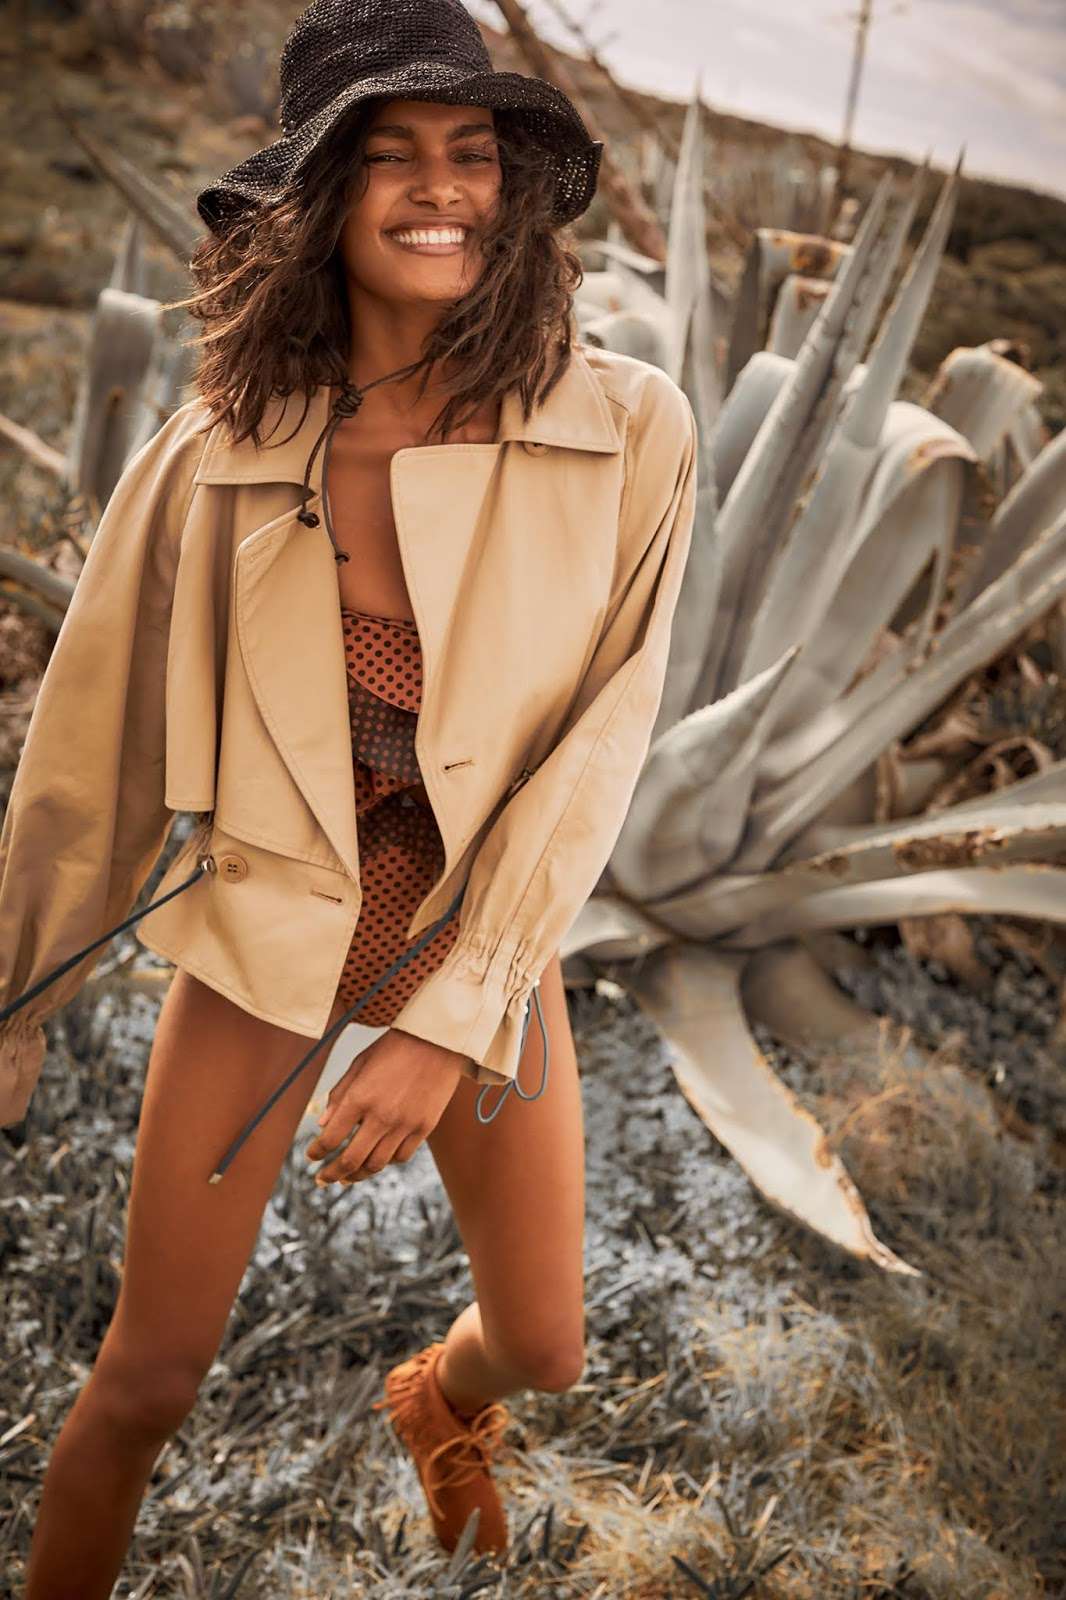 Nadia-Araujo-Desert-Rose-Red-Magazine-UK- (10).jpg